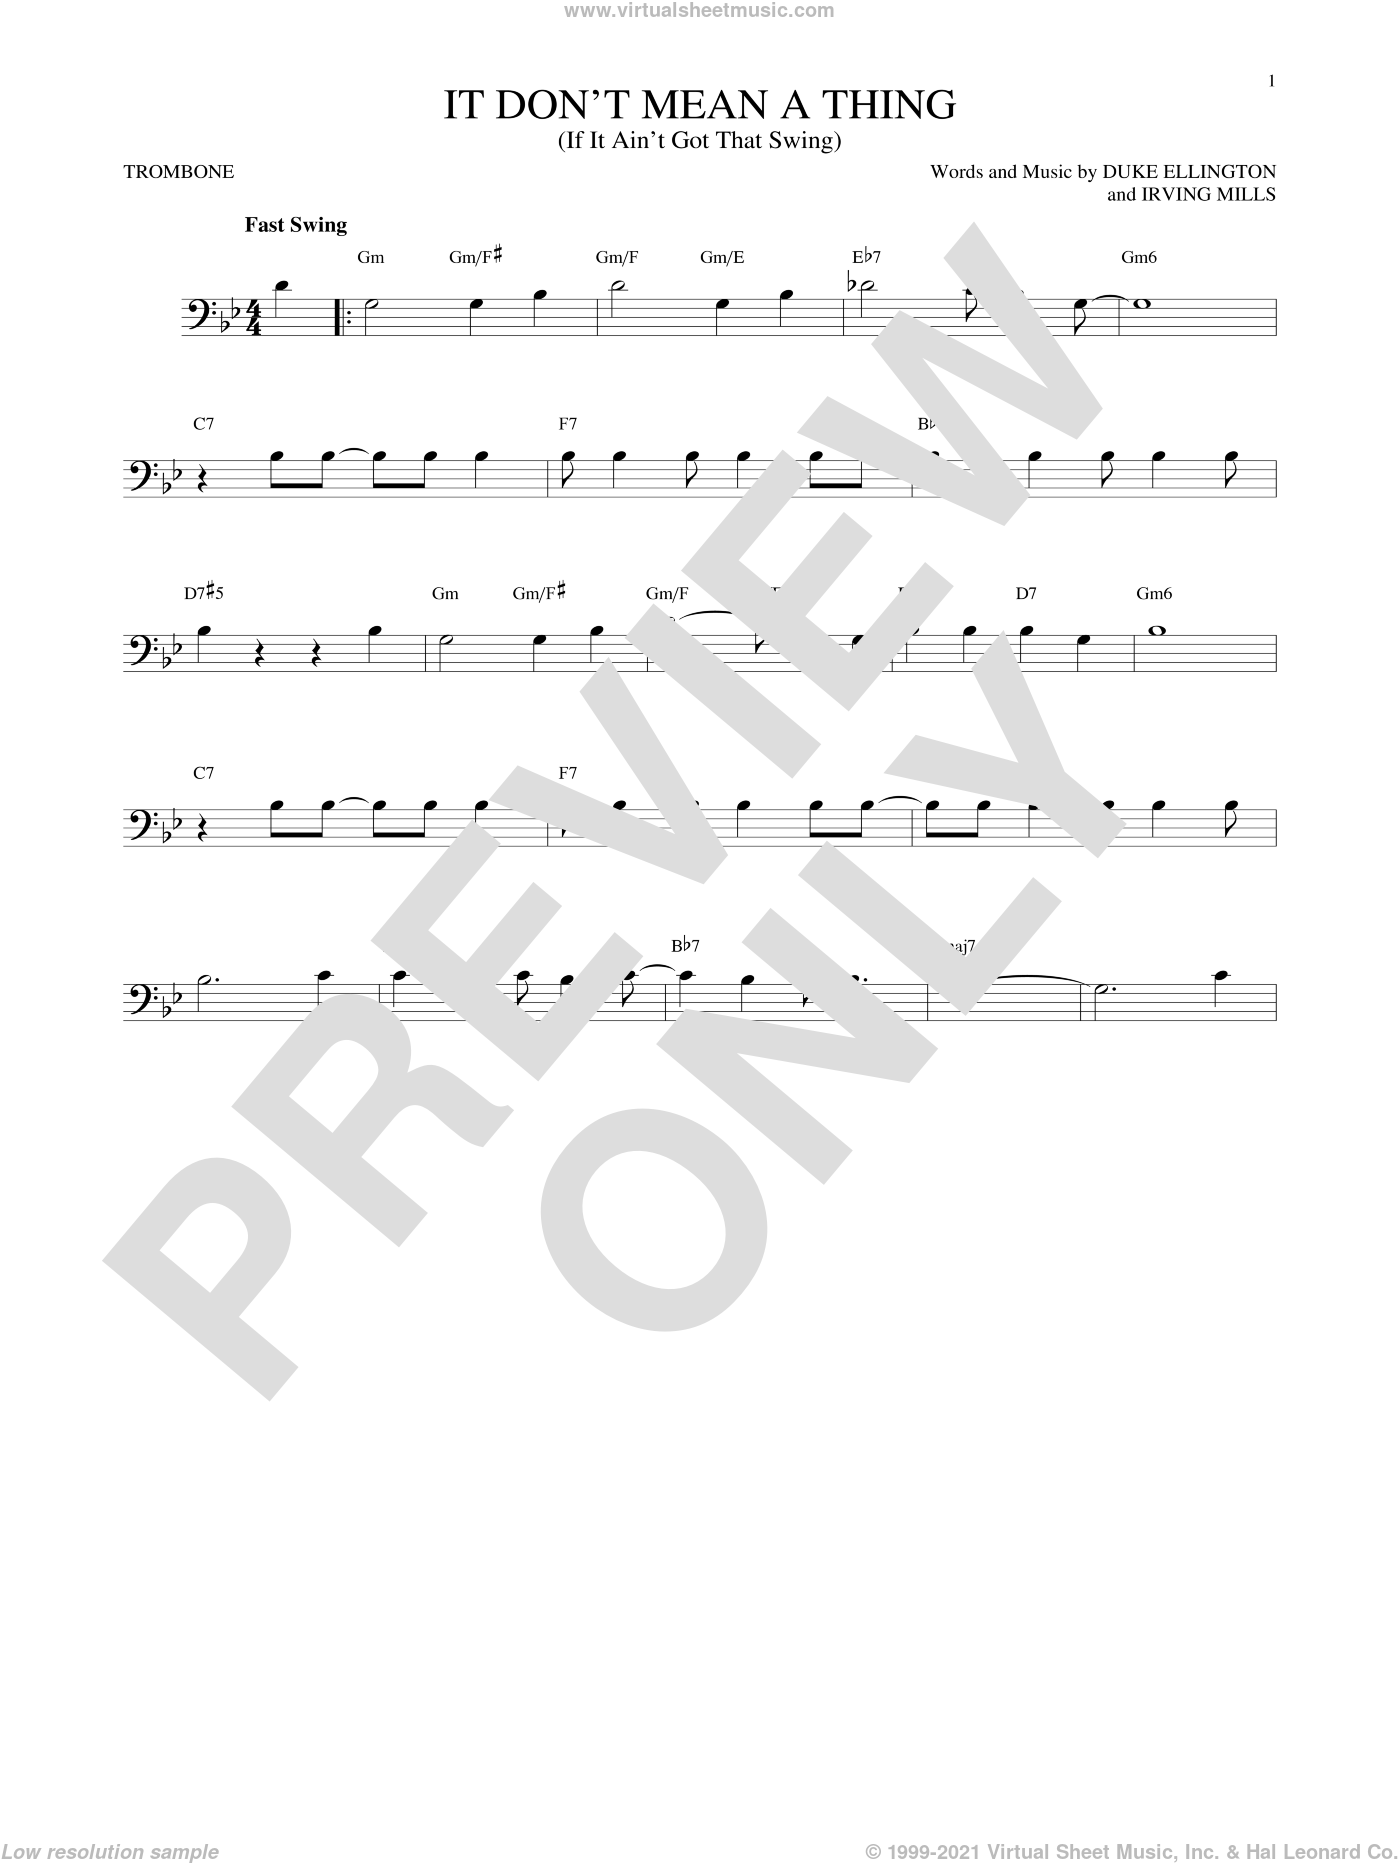 It Don't Mean A Thing (If It Ain't Got That Swing) sheet music for trombone solo by Duke Ellington and Irving Mills. Score Image Preview.